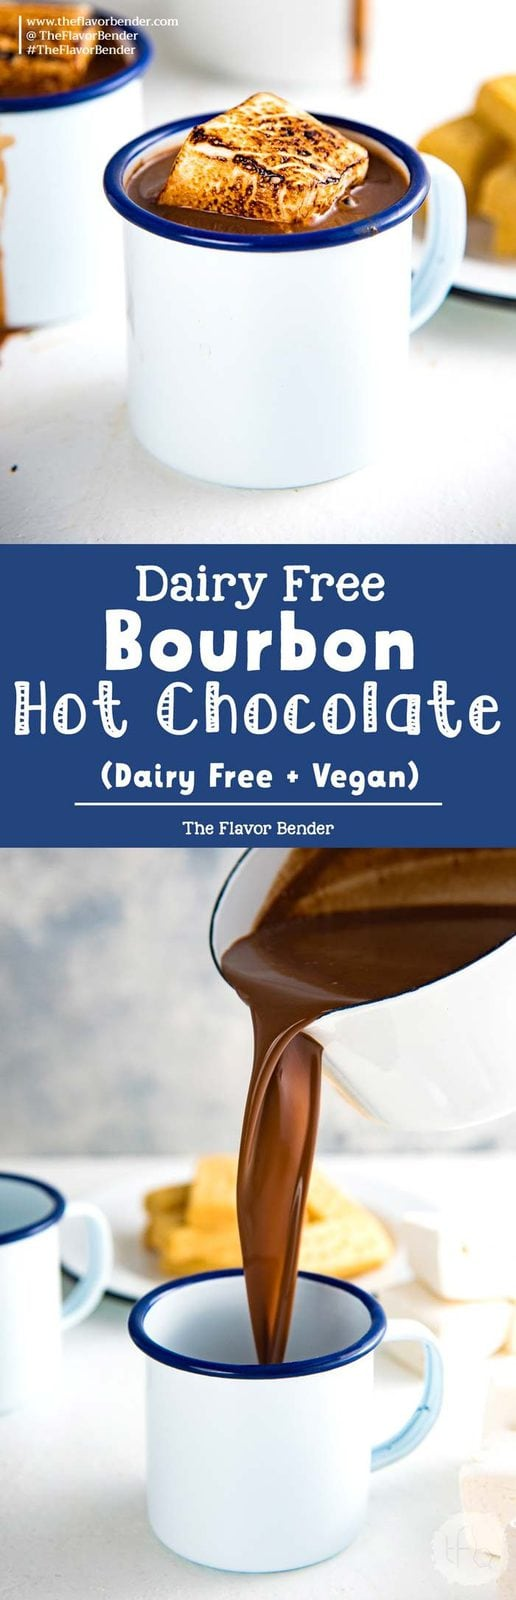 Dairy Free Bourbon Hot Chocolate - a luscious, rich decadent dairy free french hot chocolate with a splash of bourbon to warm you up from the inside! Vegan and dairy free.